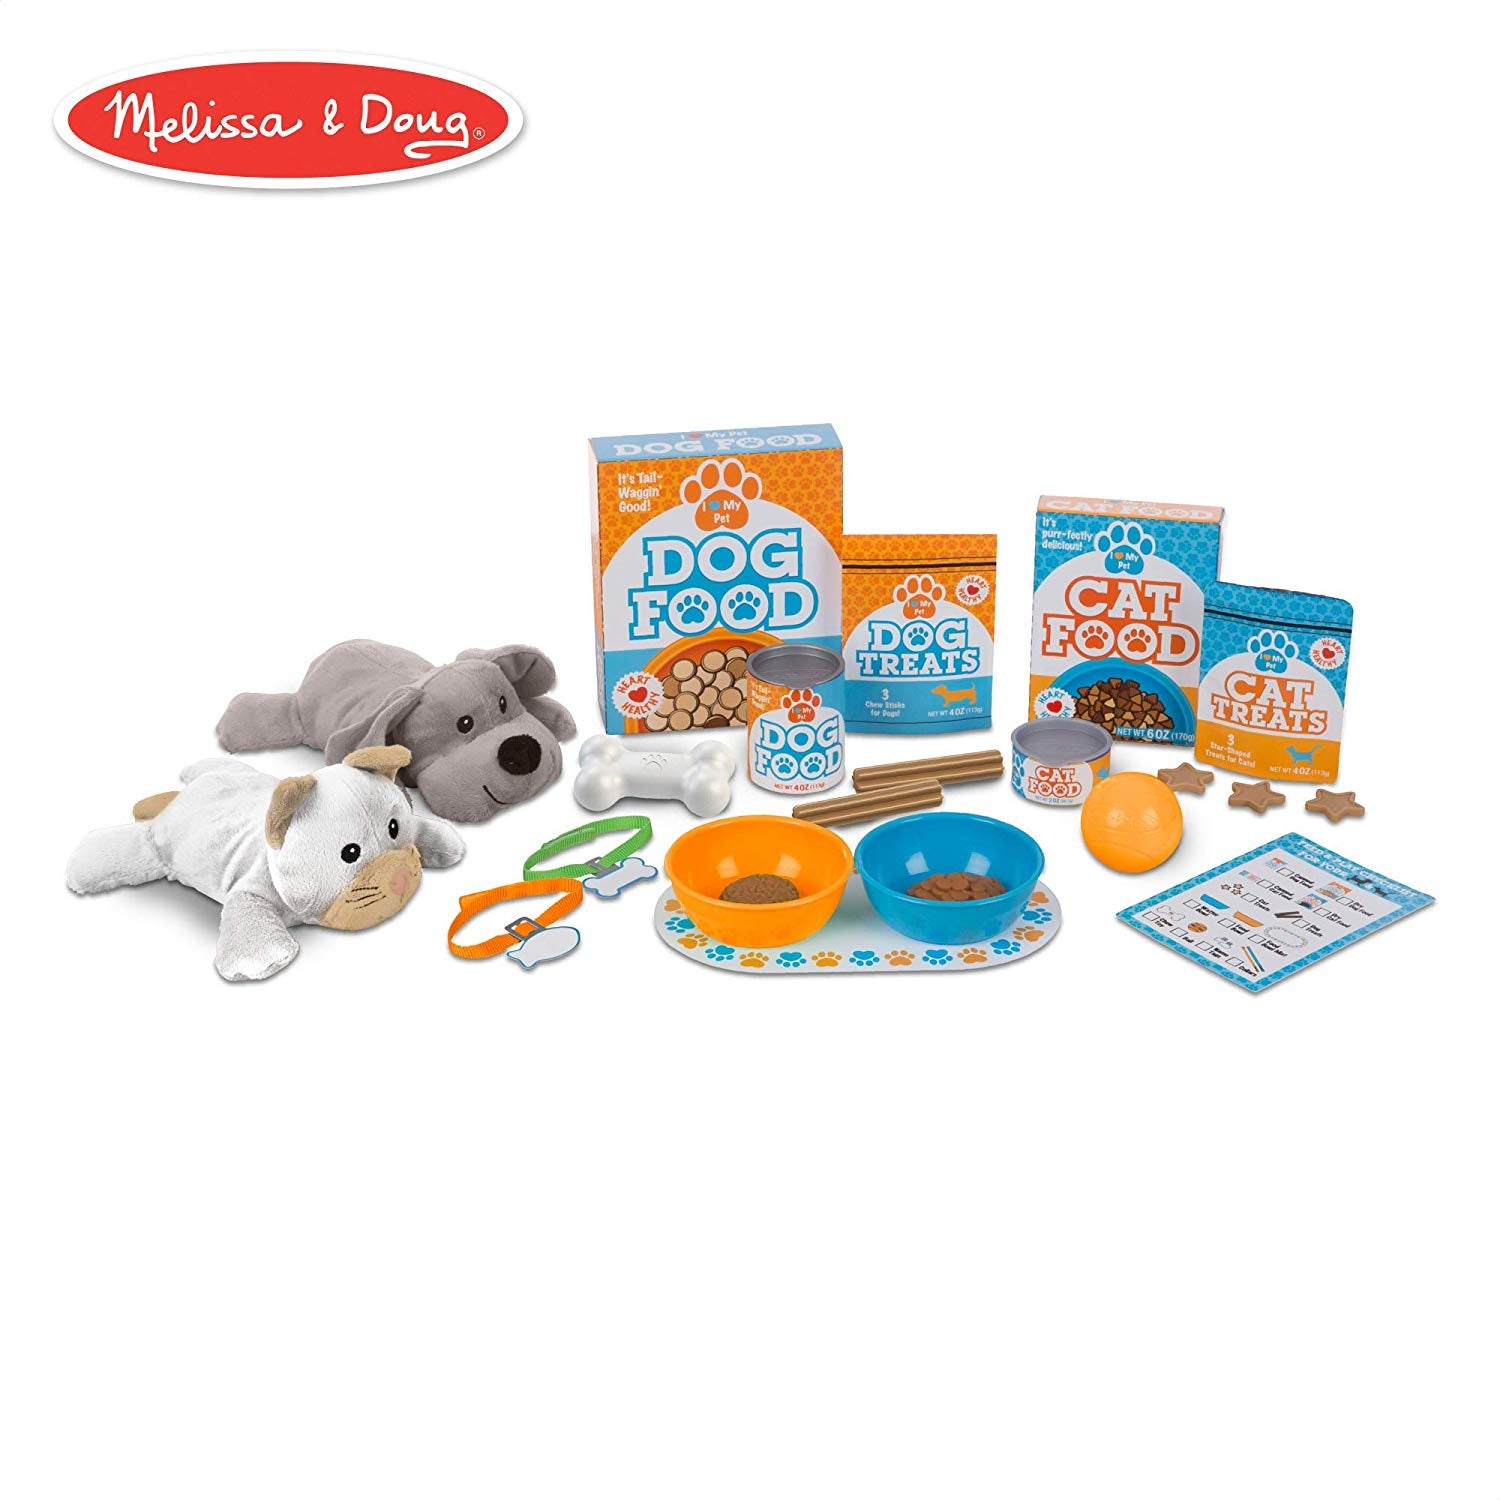 Melissa & Doug Pet Treats Playset